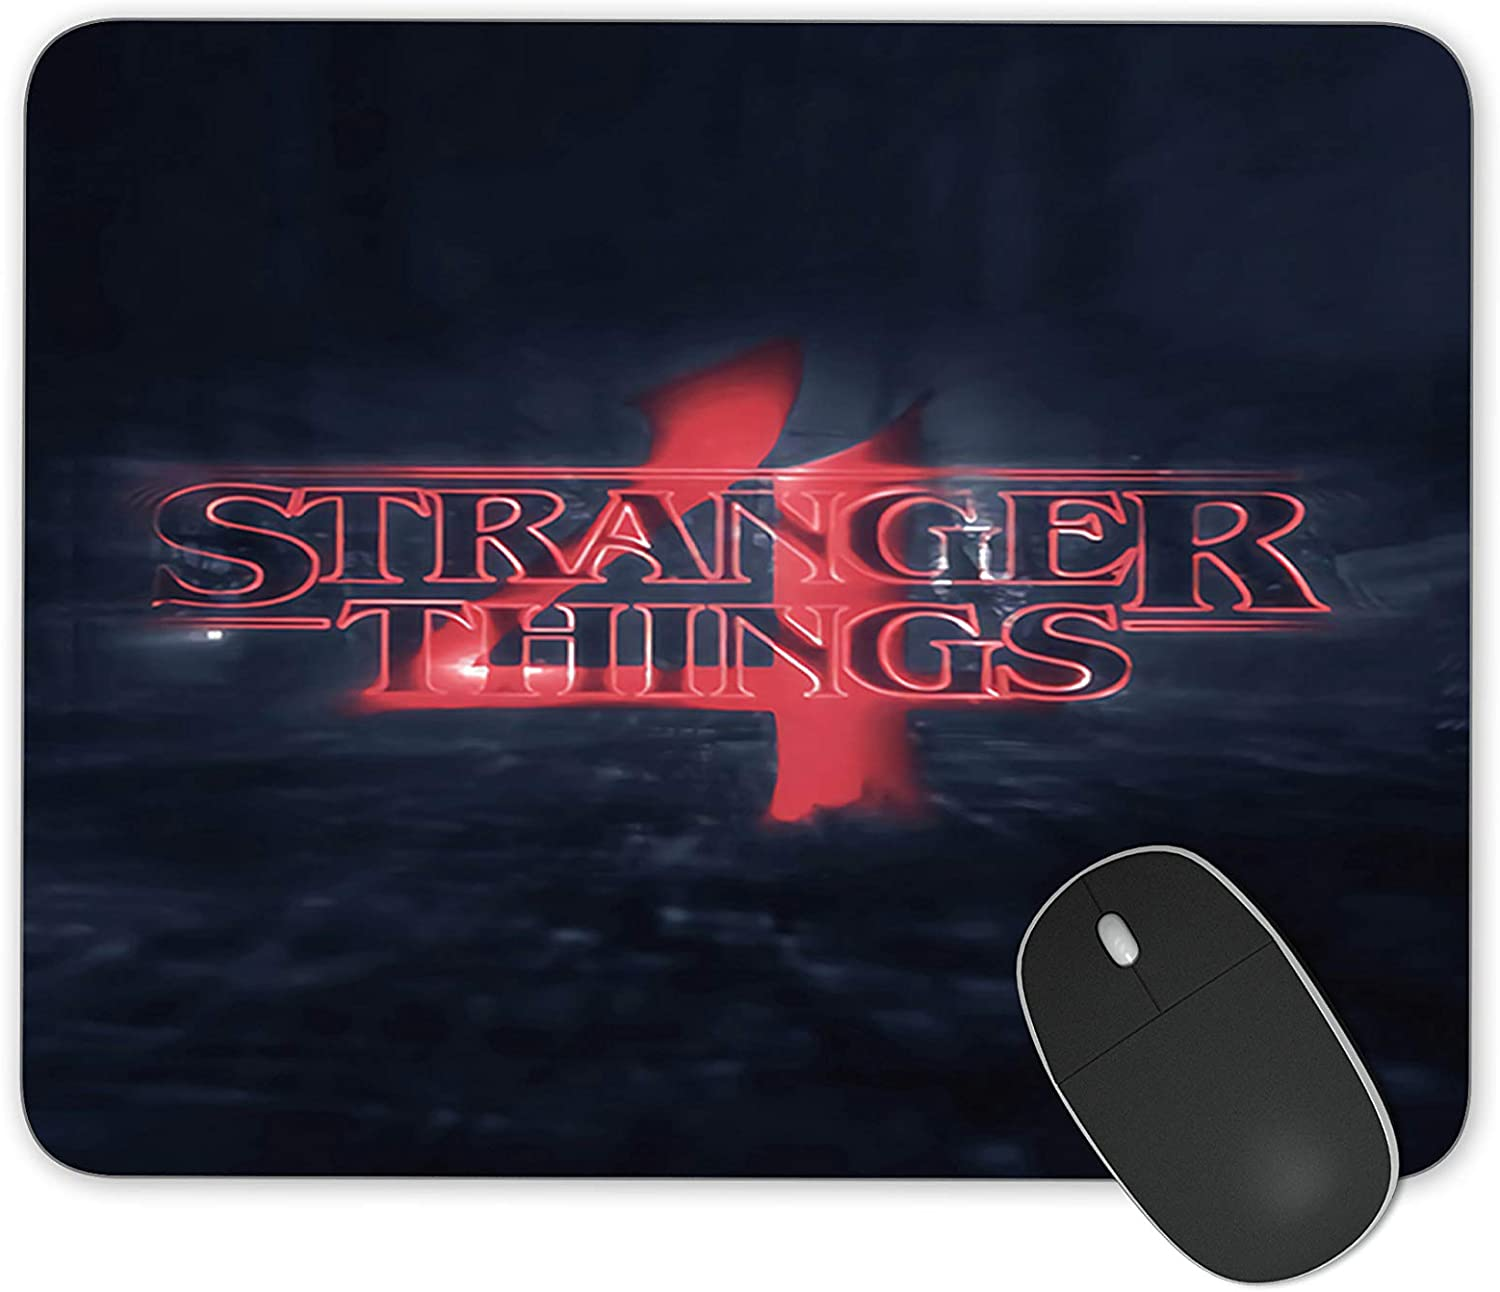 JNKPOAI Stranger Things Series Anti-Slip Mouse Pad Personalize The Office Mouse Pad The Game Must Choose Mouse Pad (Stranger Things#6)